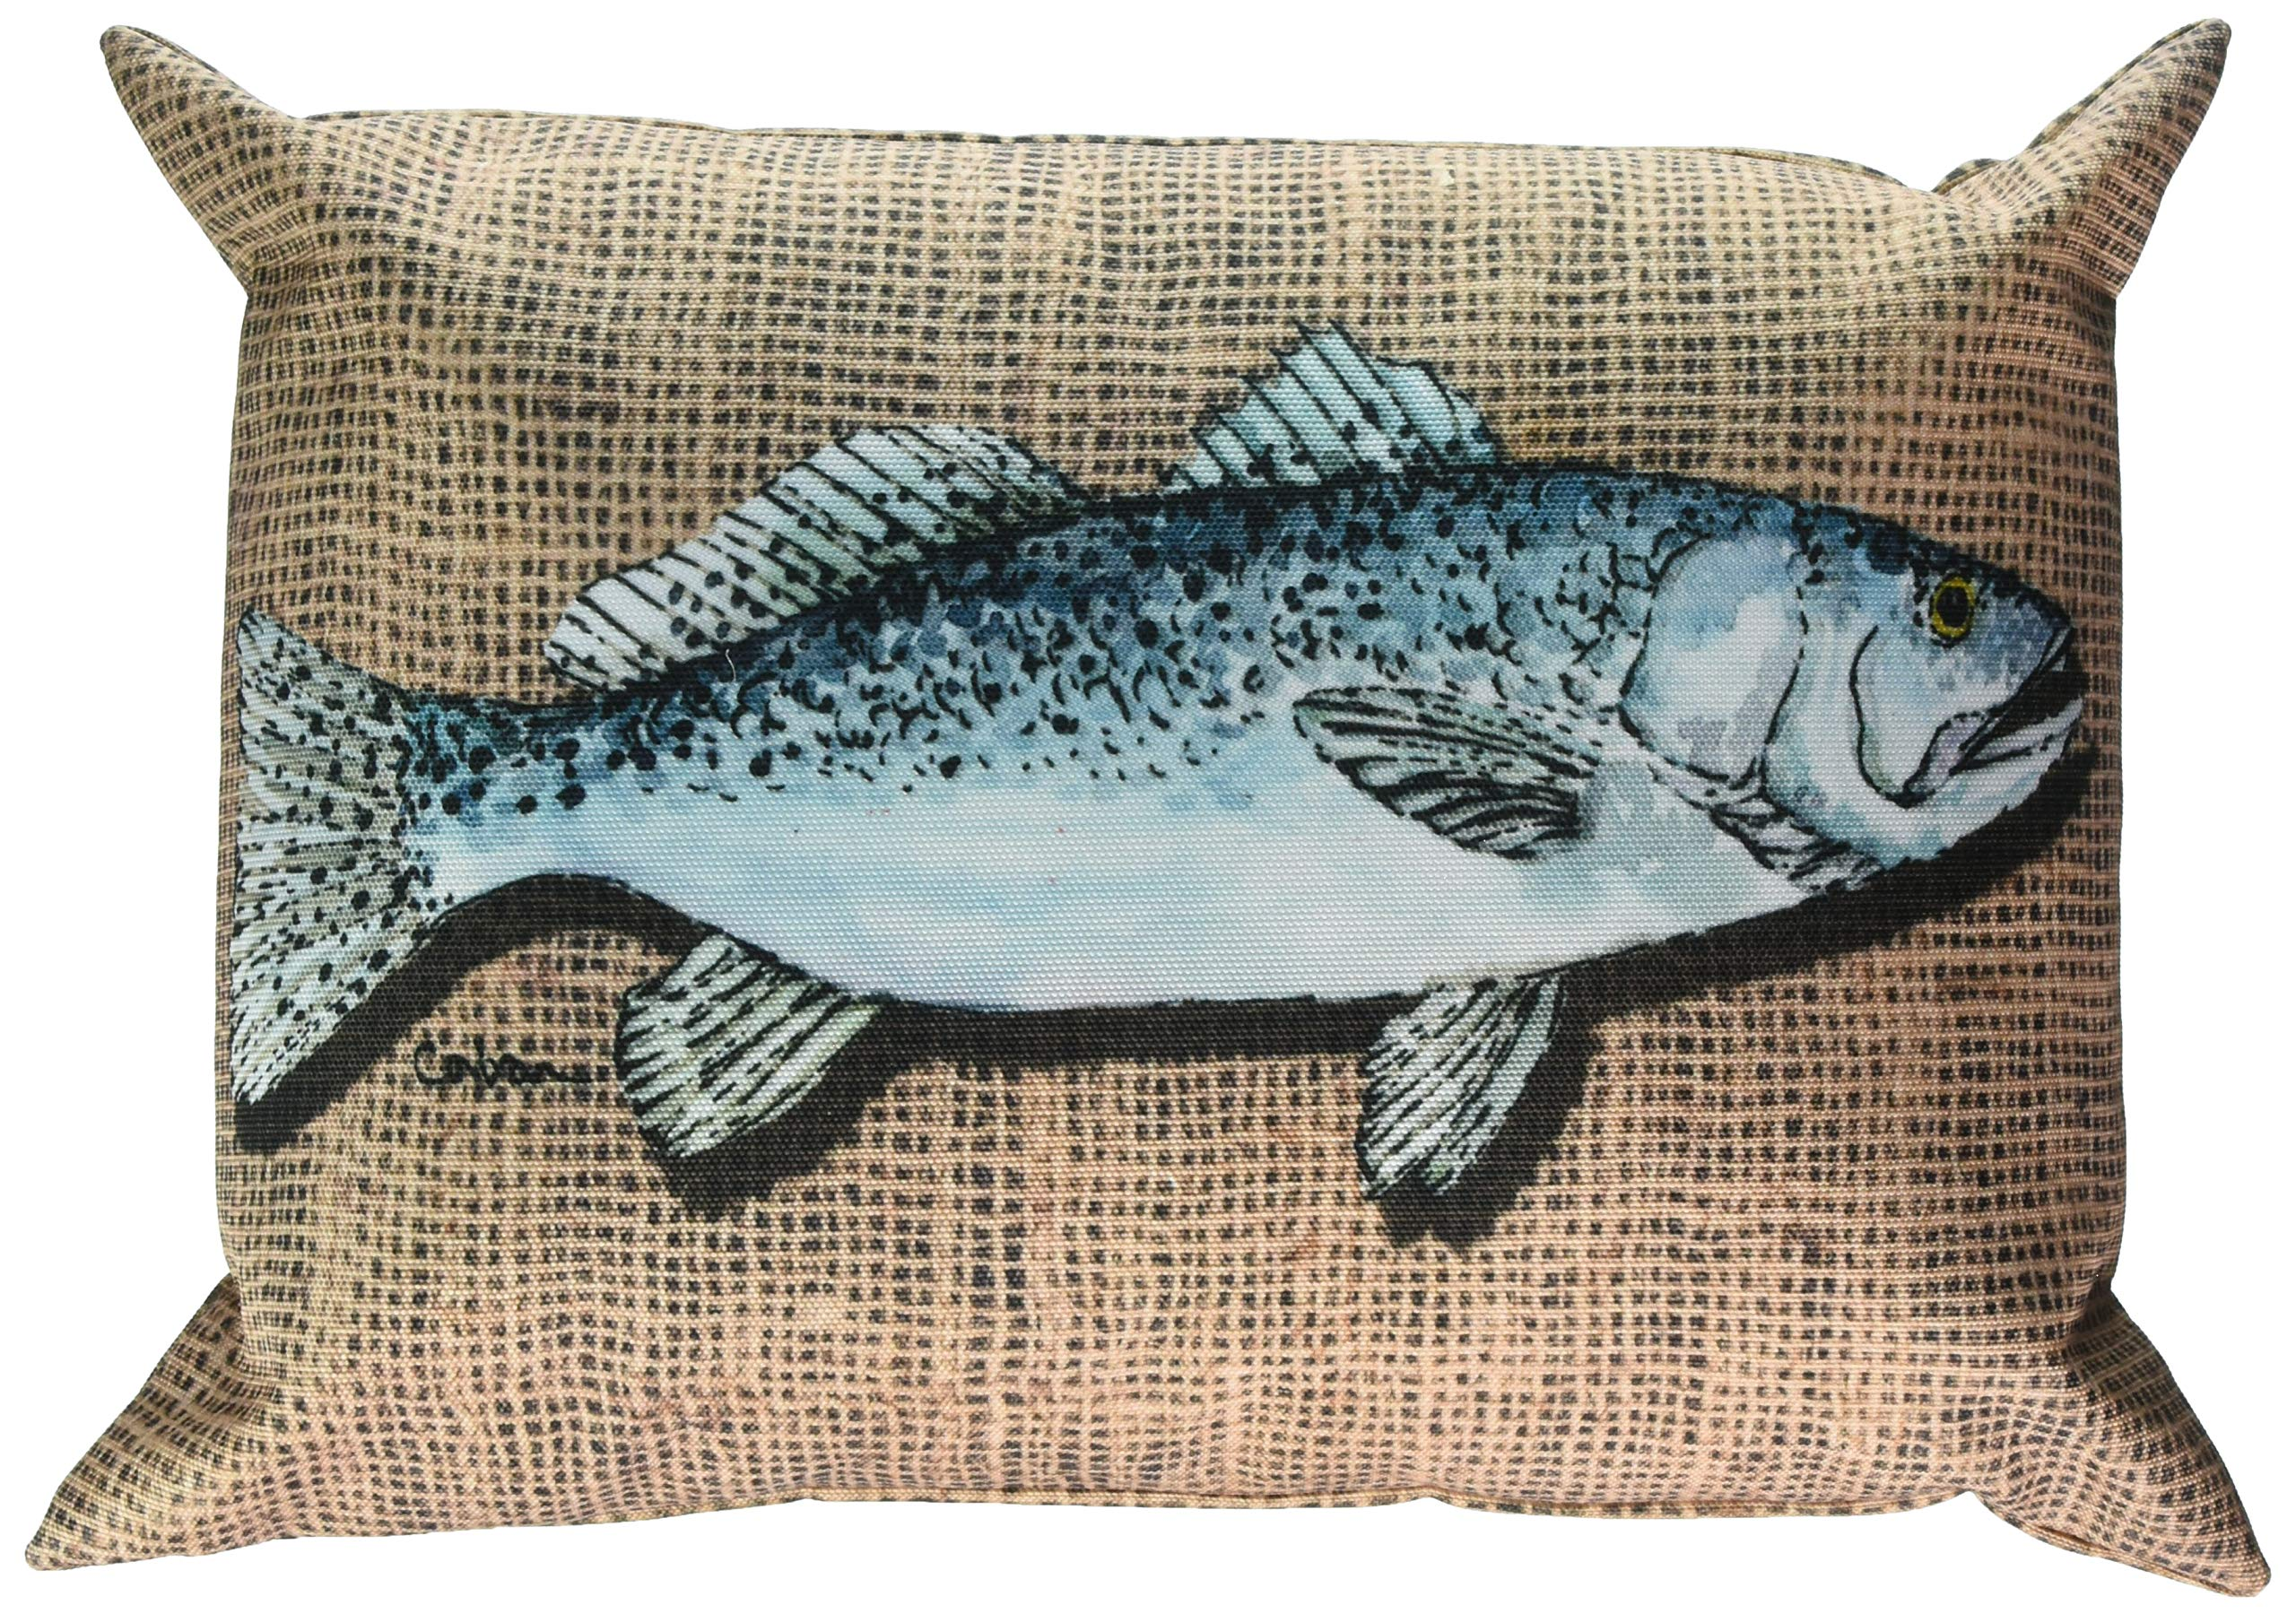 Caroline's Treasures 8737PW1216 Fish Speckled Trout Canvas Fabric Decorative Pillow, Large, Multicolor - Indoor or Outdoor Pillow from heavyweight canvas material 100% Polyester Fabric pillow Sham with pillow form Fade Resistant - patio, outdoor-throw-pillows, outdoor-decor - 91NGWtxartL -